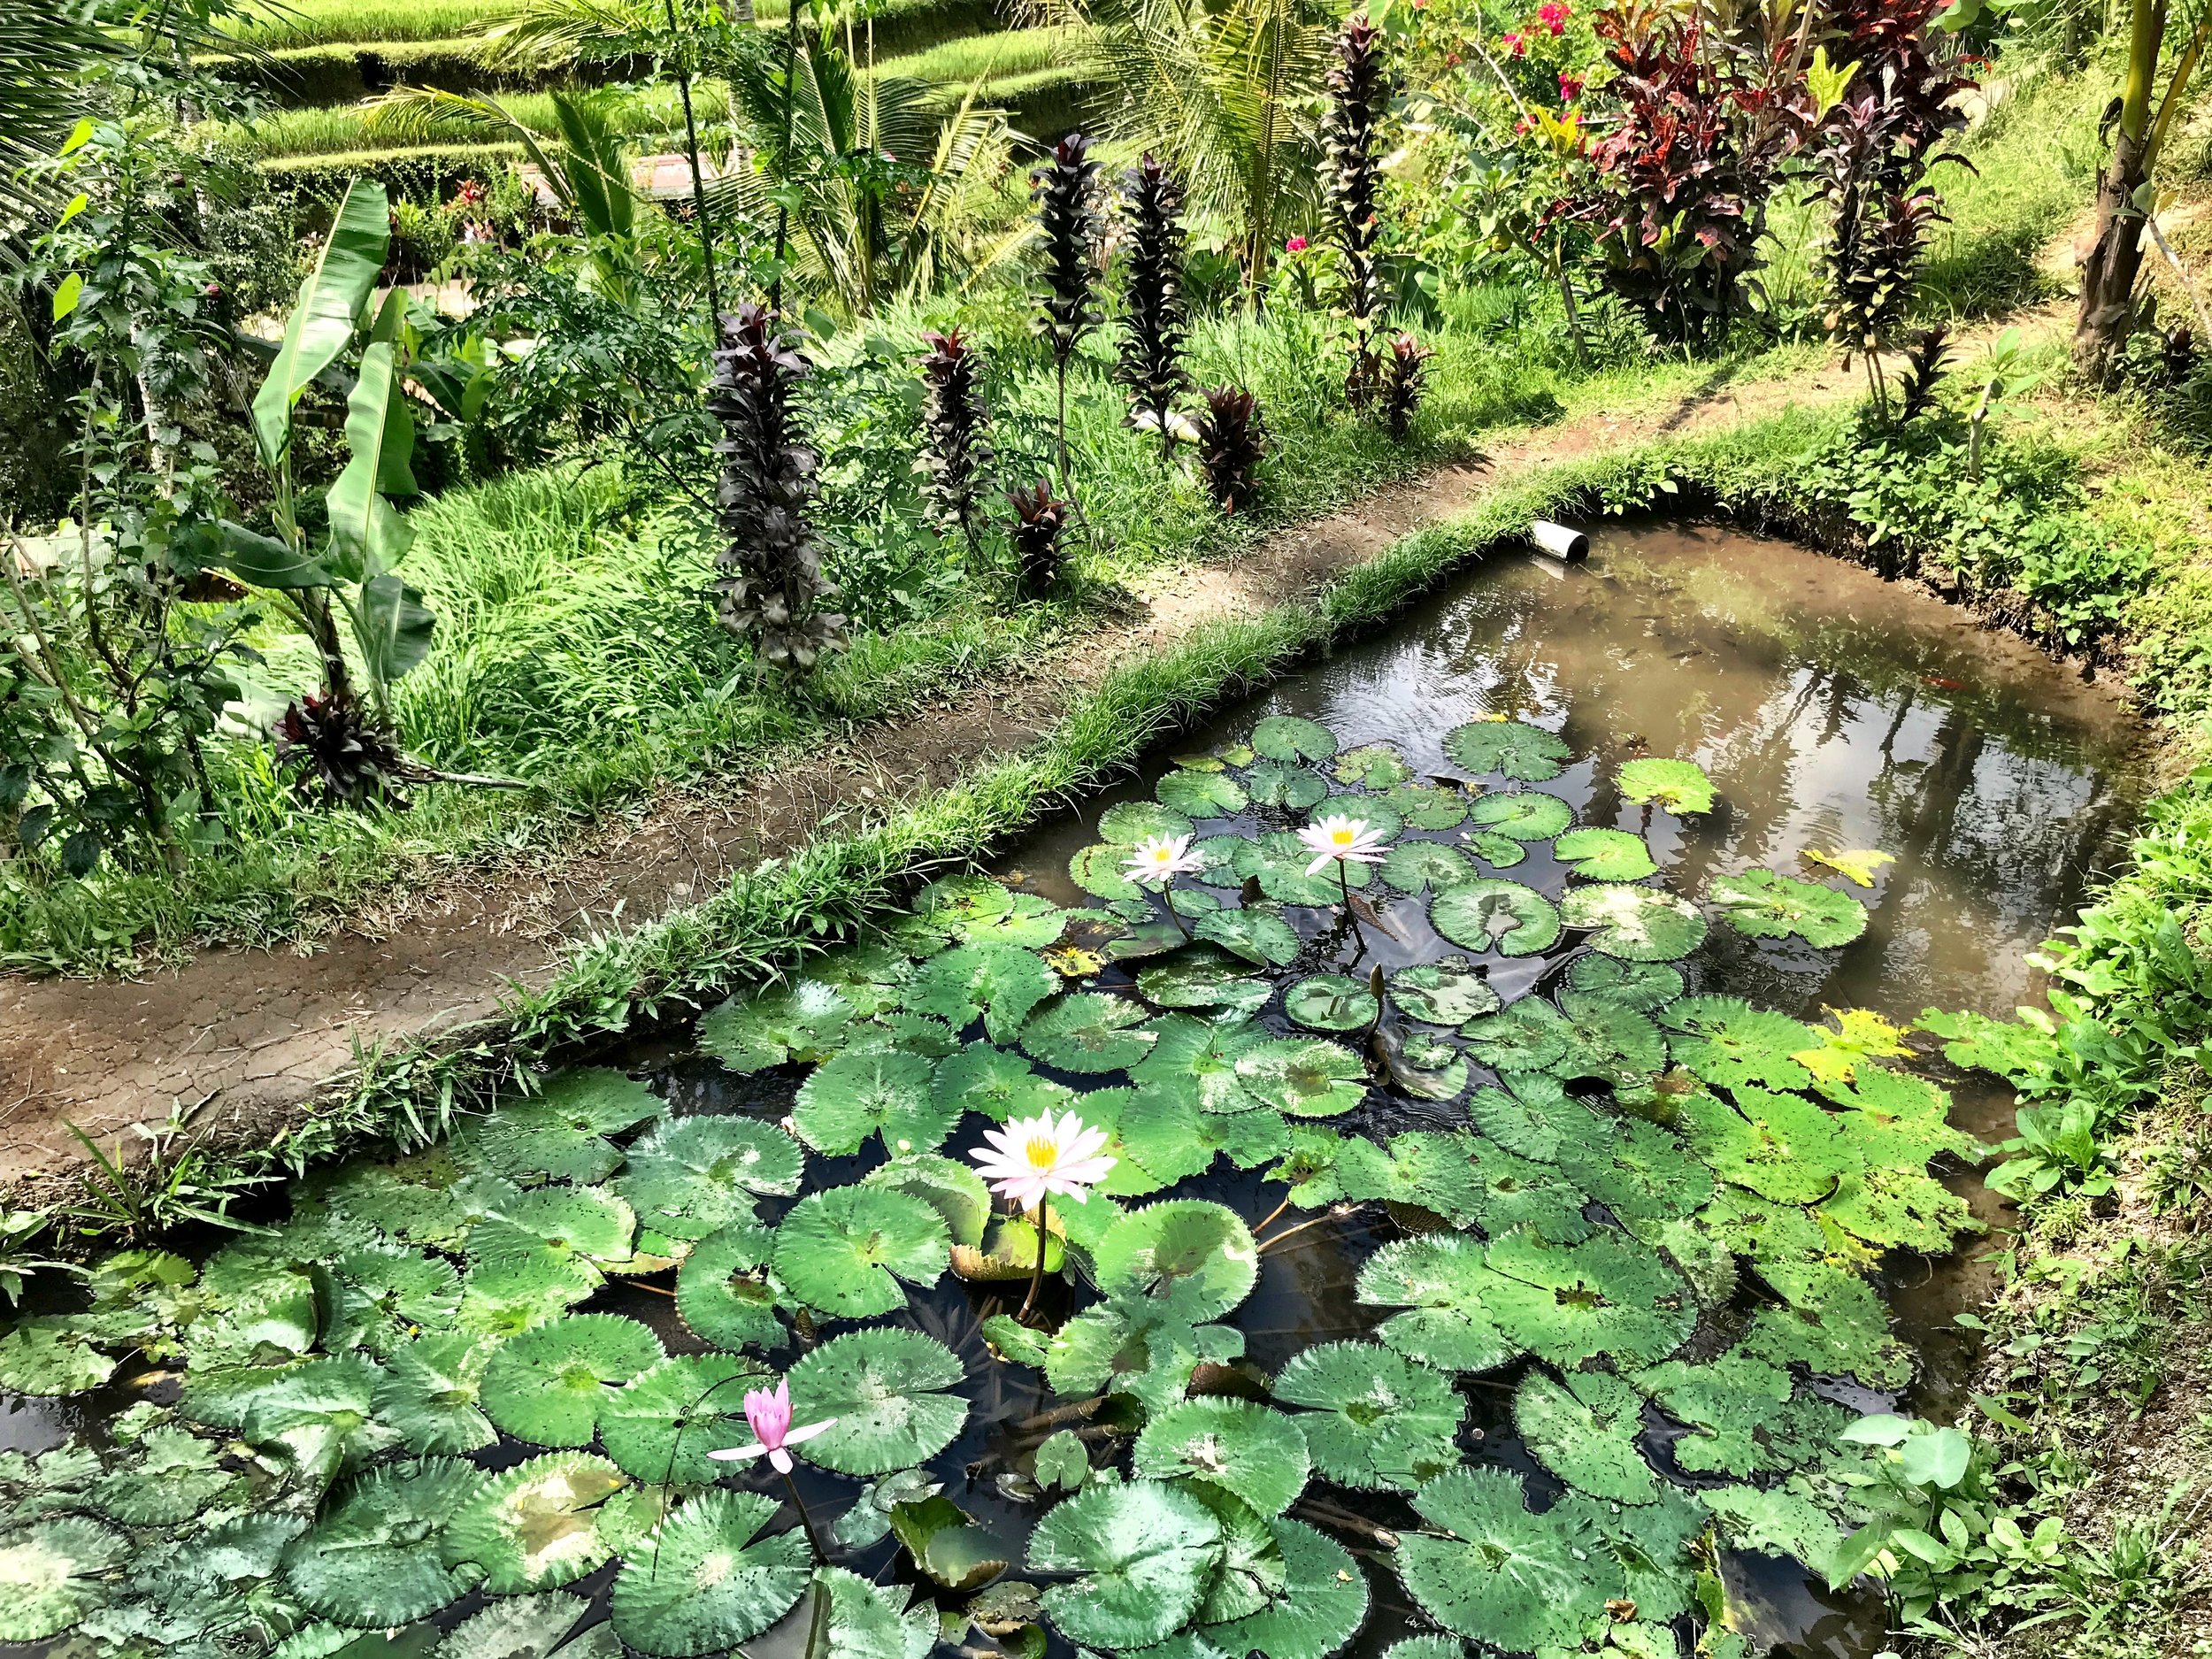 A lotus pond we stumbled upon